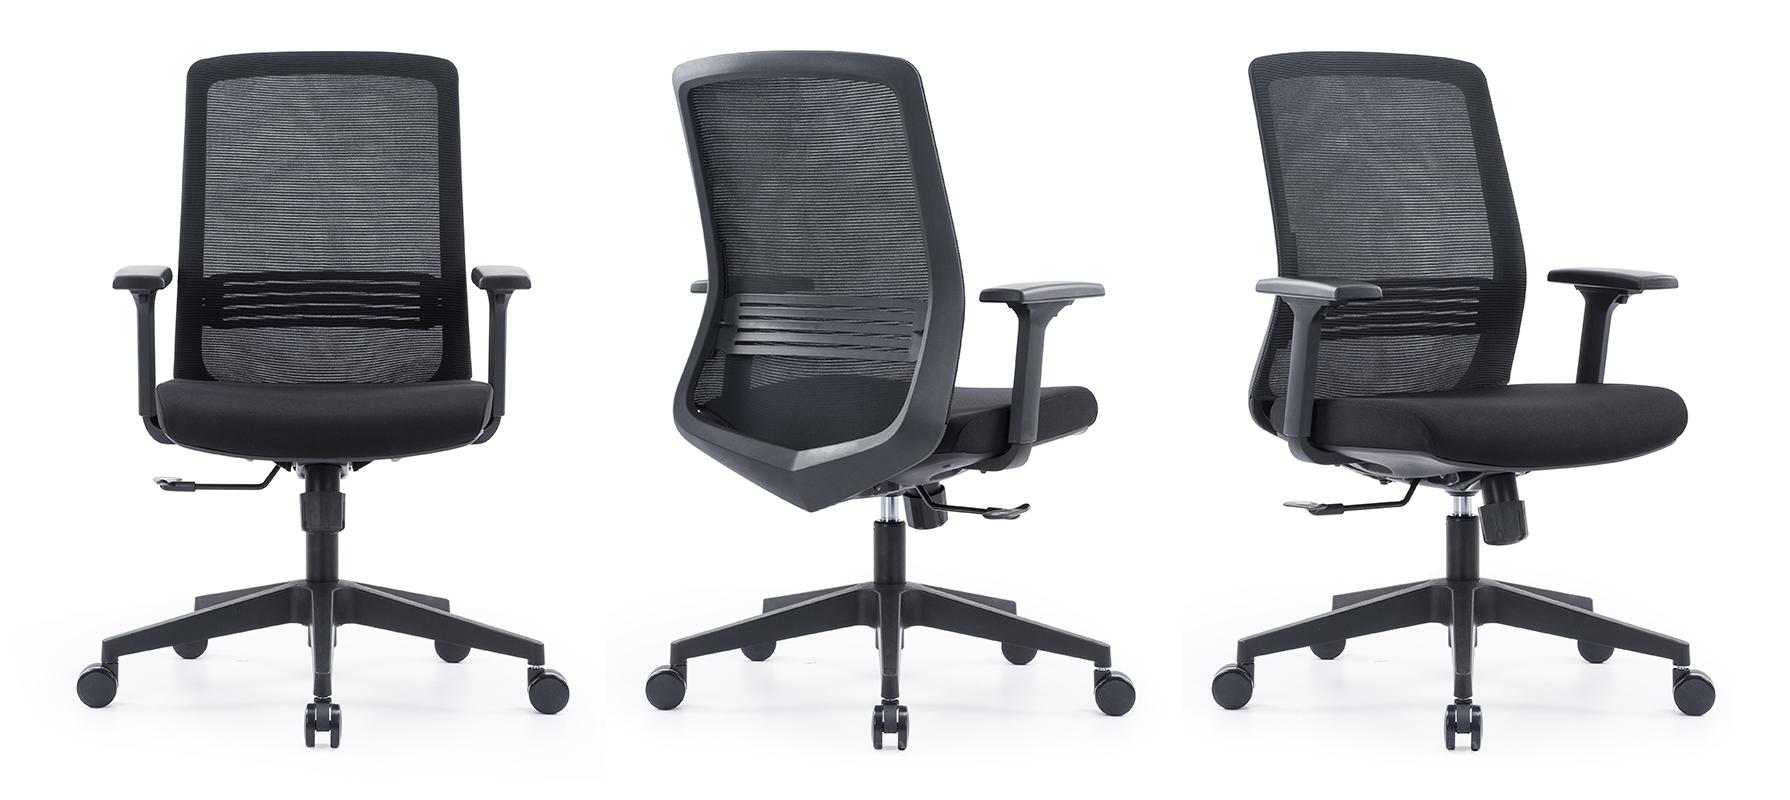 Image 2 for MEDASANA OFFICE CHAIR